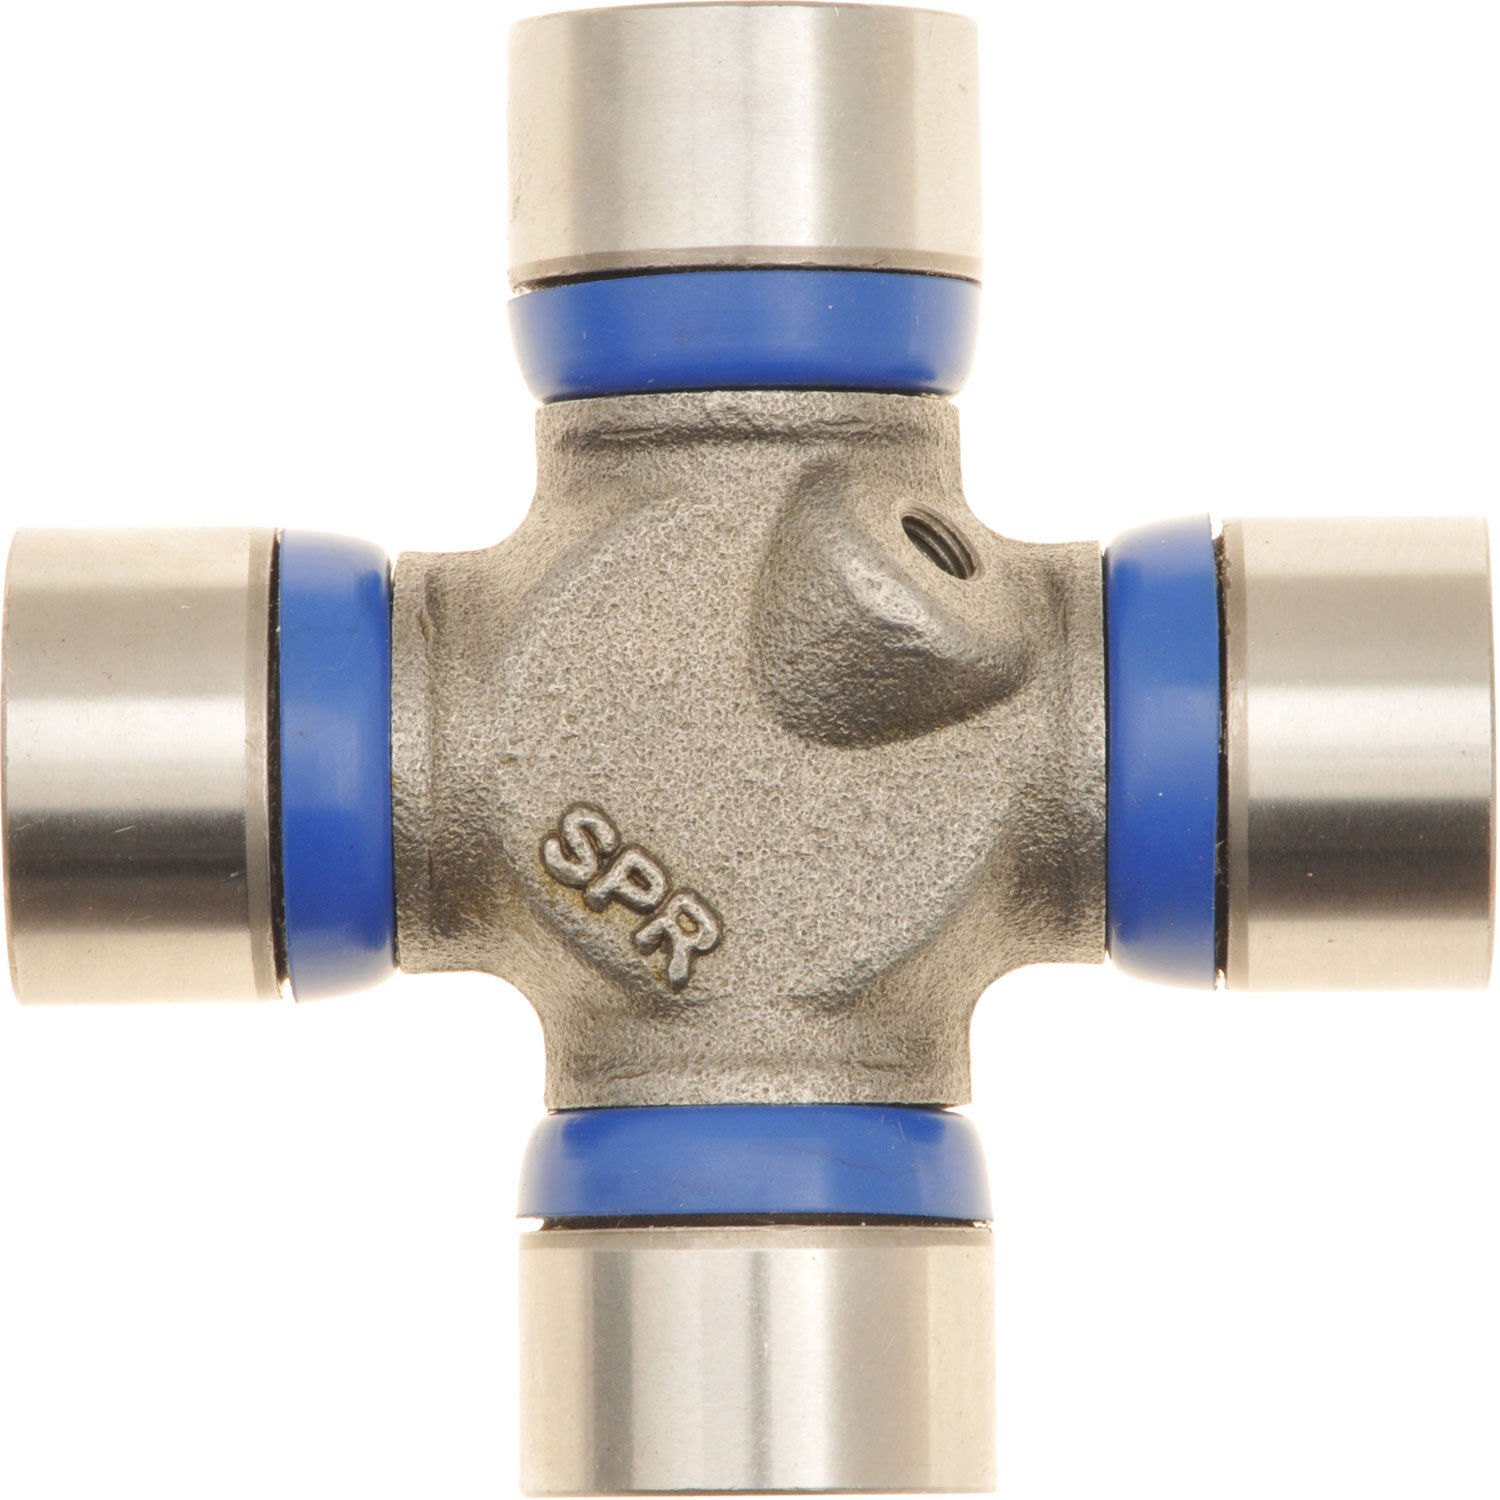 Neapco 2-3050 Conversion Universal Joint 1330 to 1350